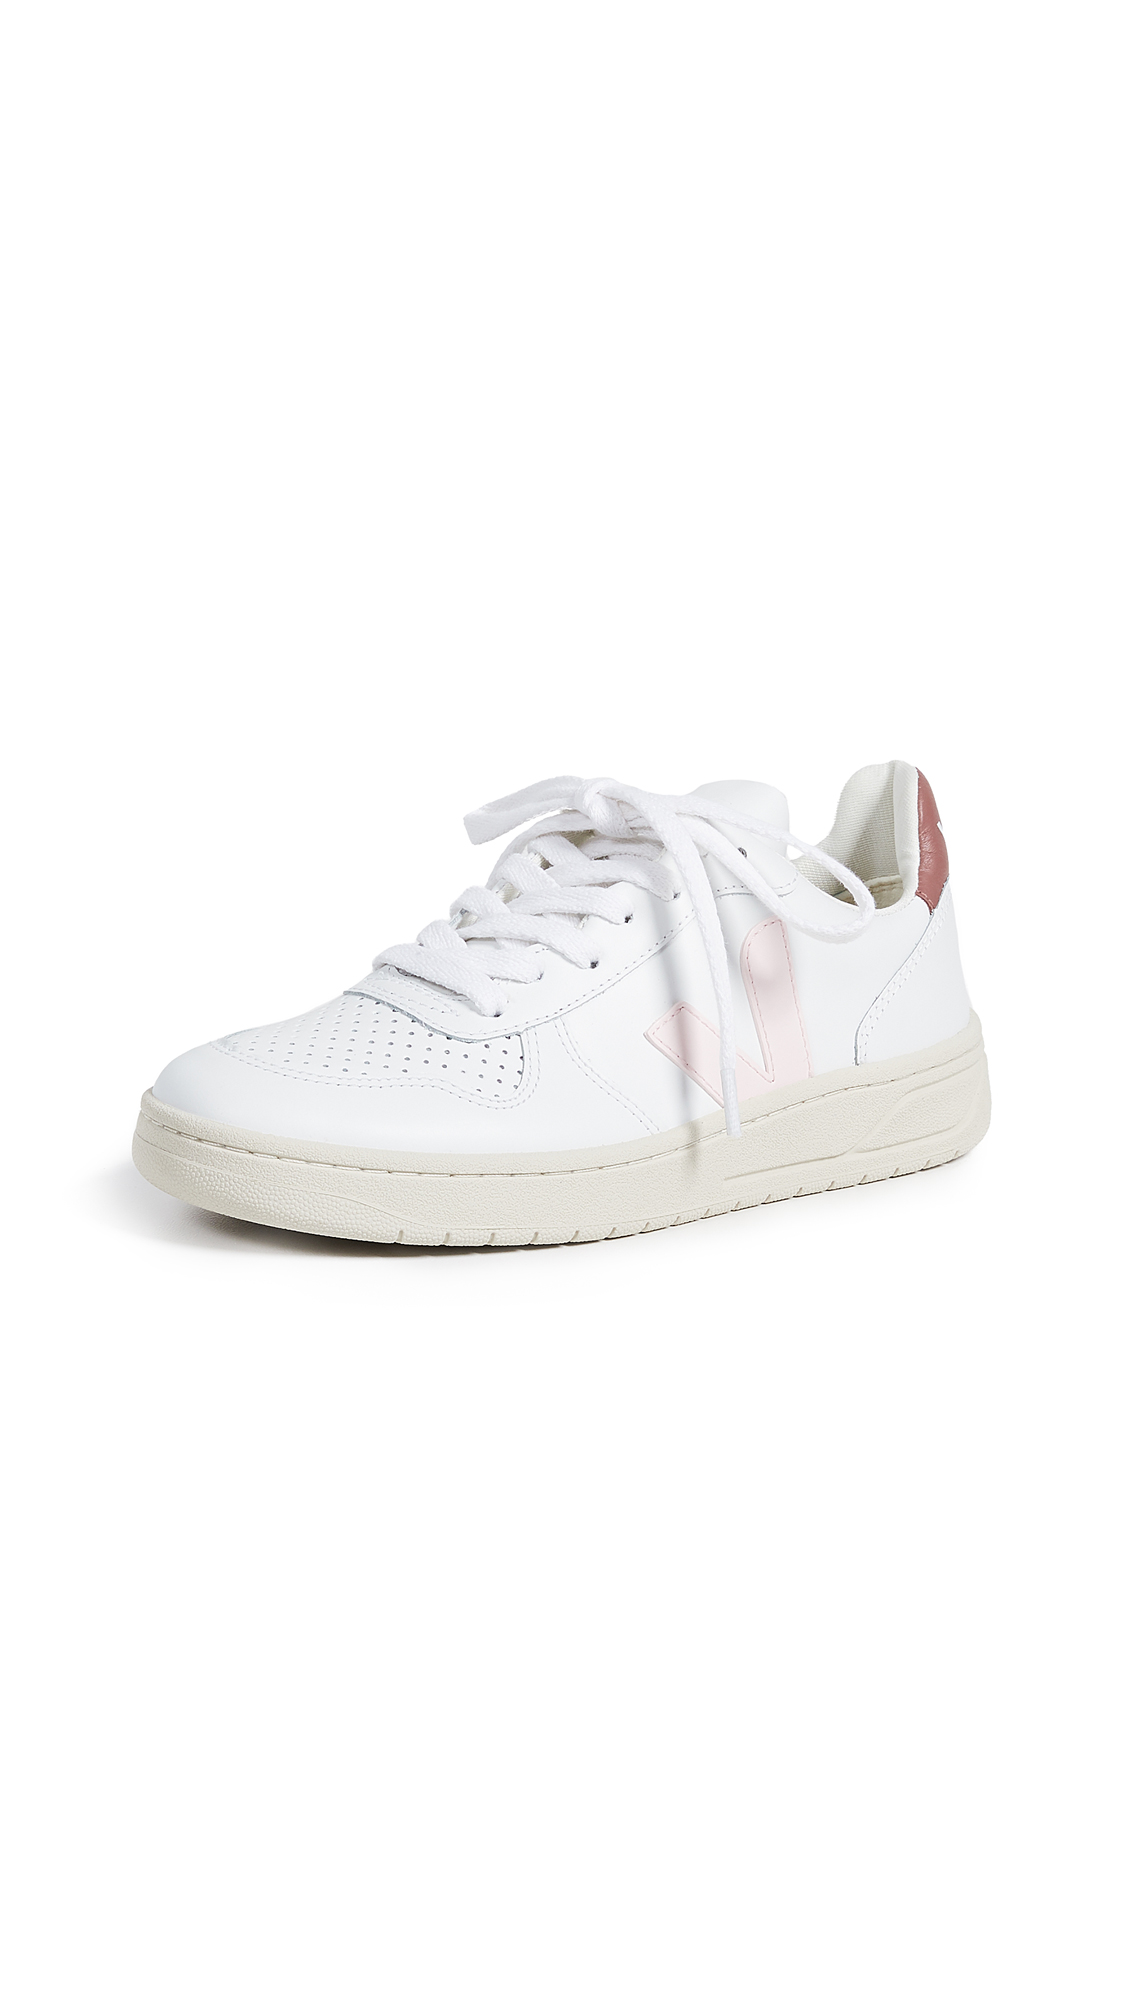 Veja V-10 Lace Up Sneakers - Extra White/Petale/Dried Petal